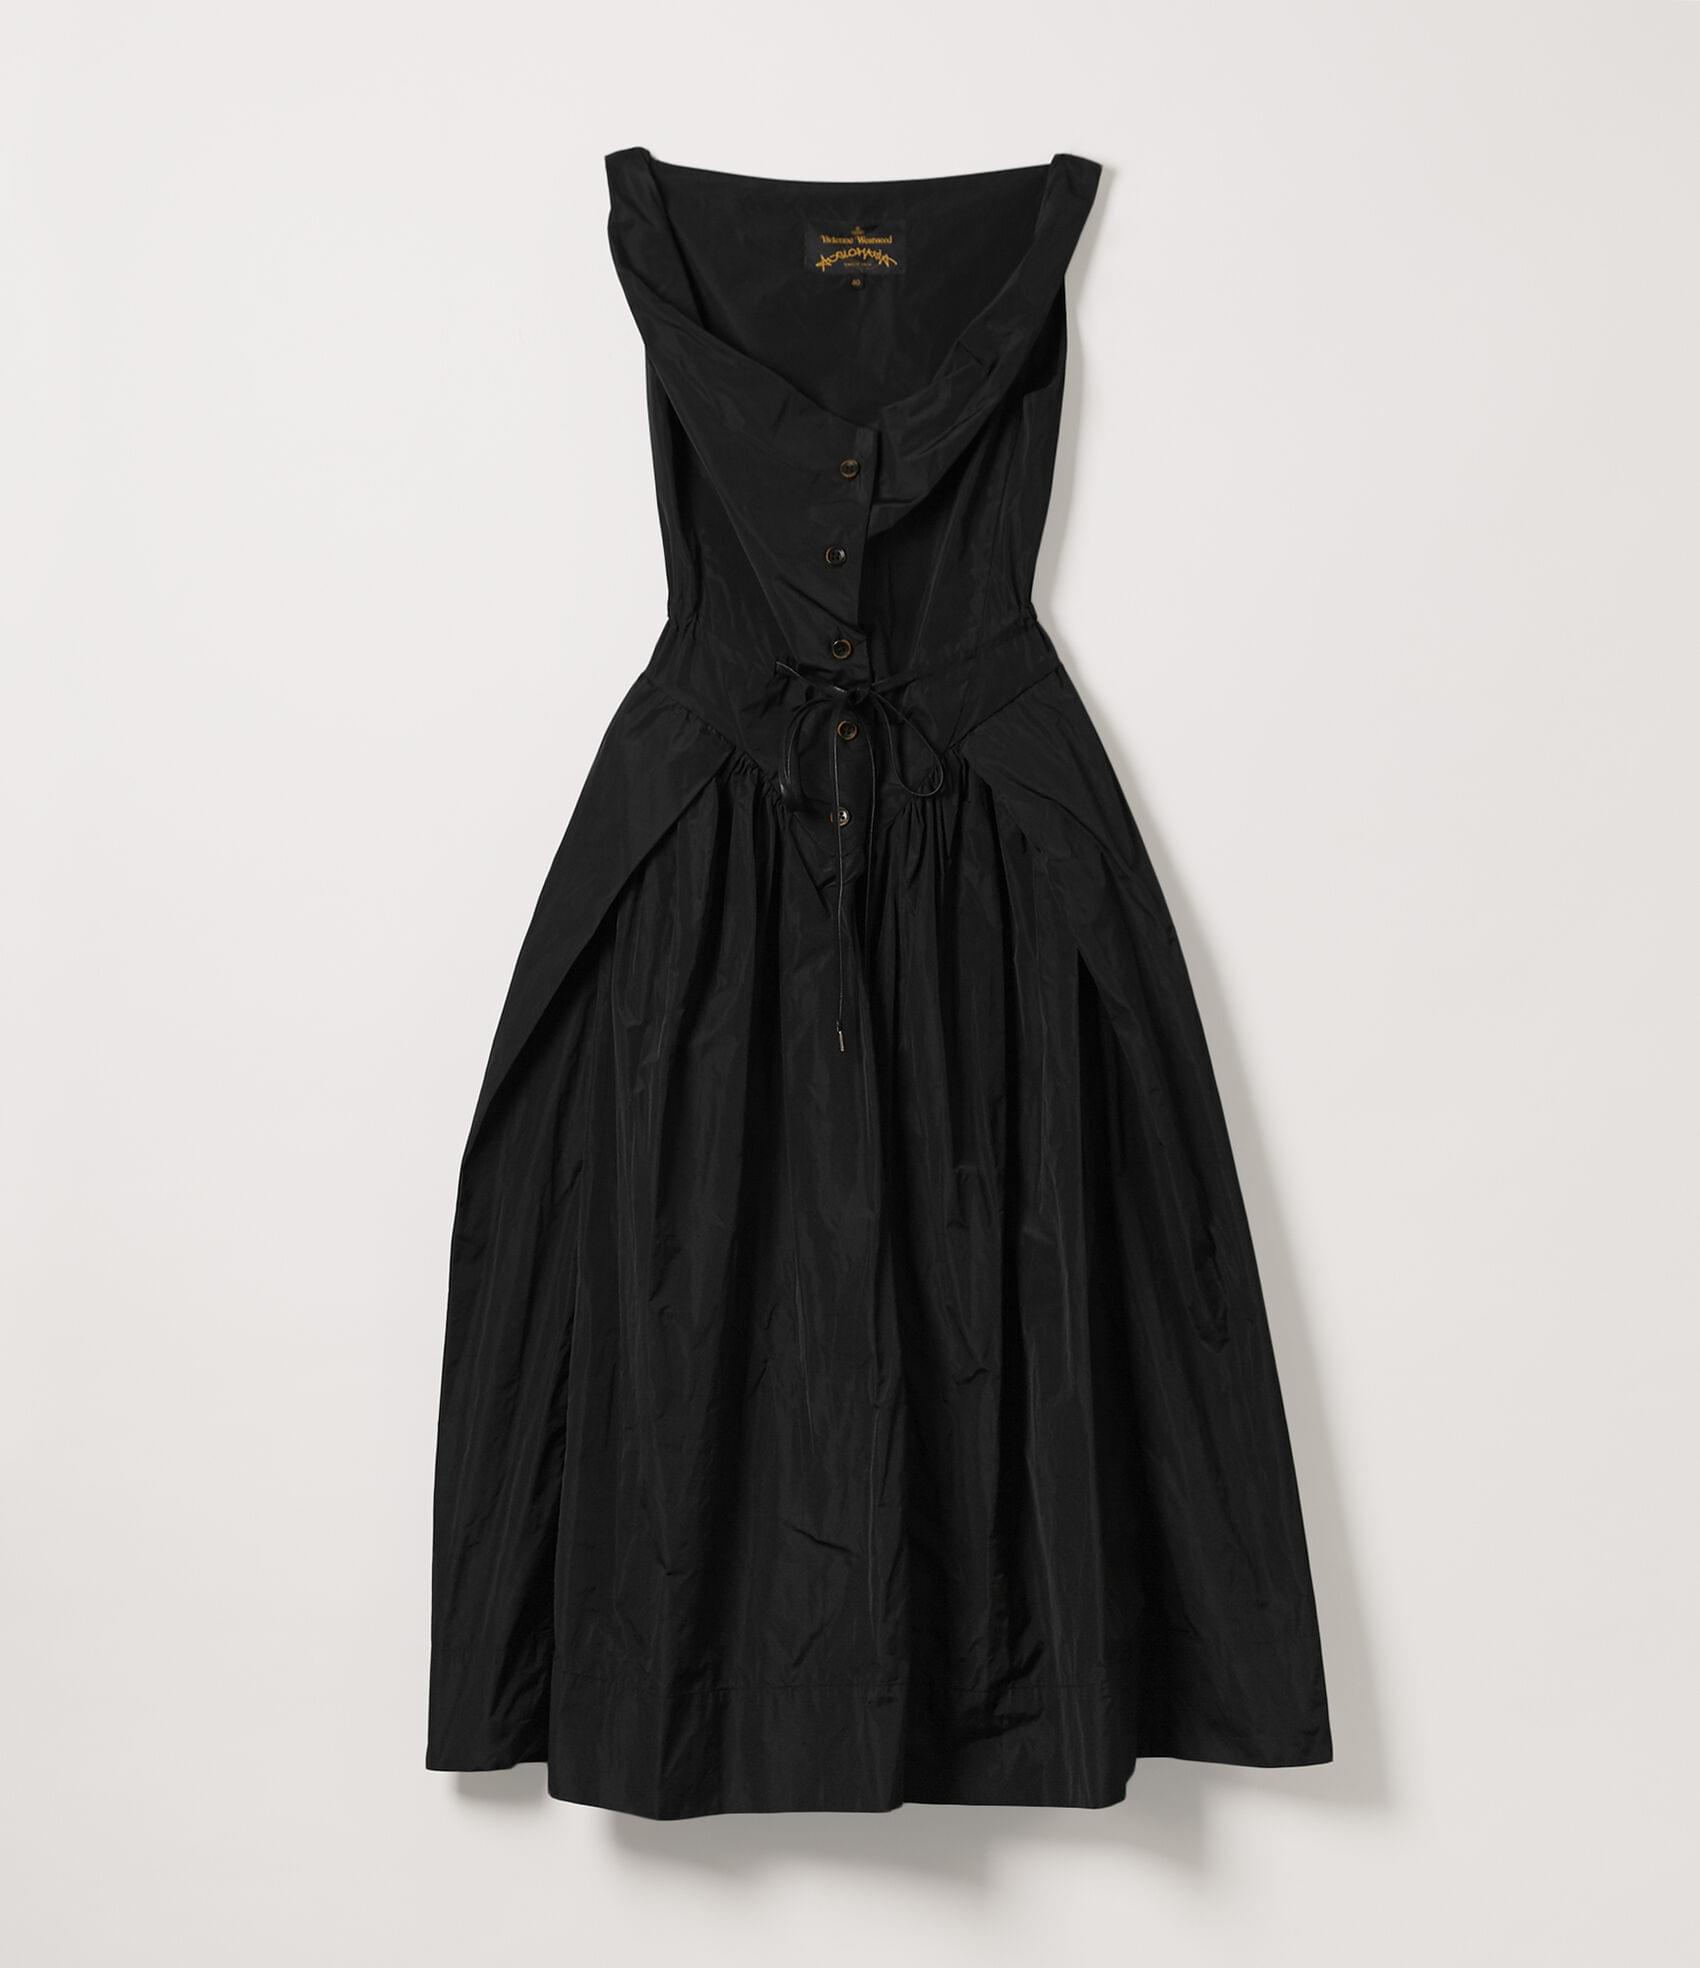 Vivienne Westwood SATURDAY DRESS BLACK